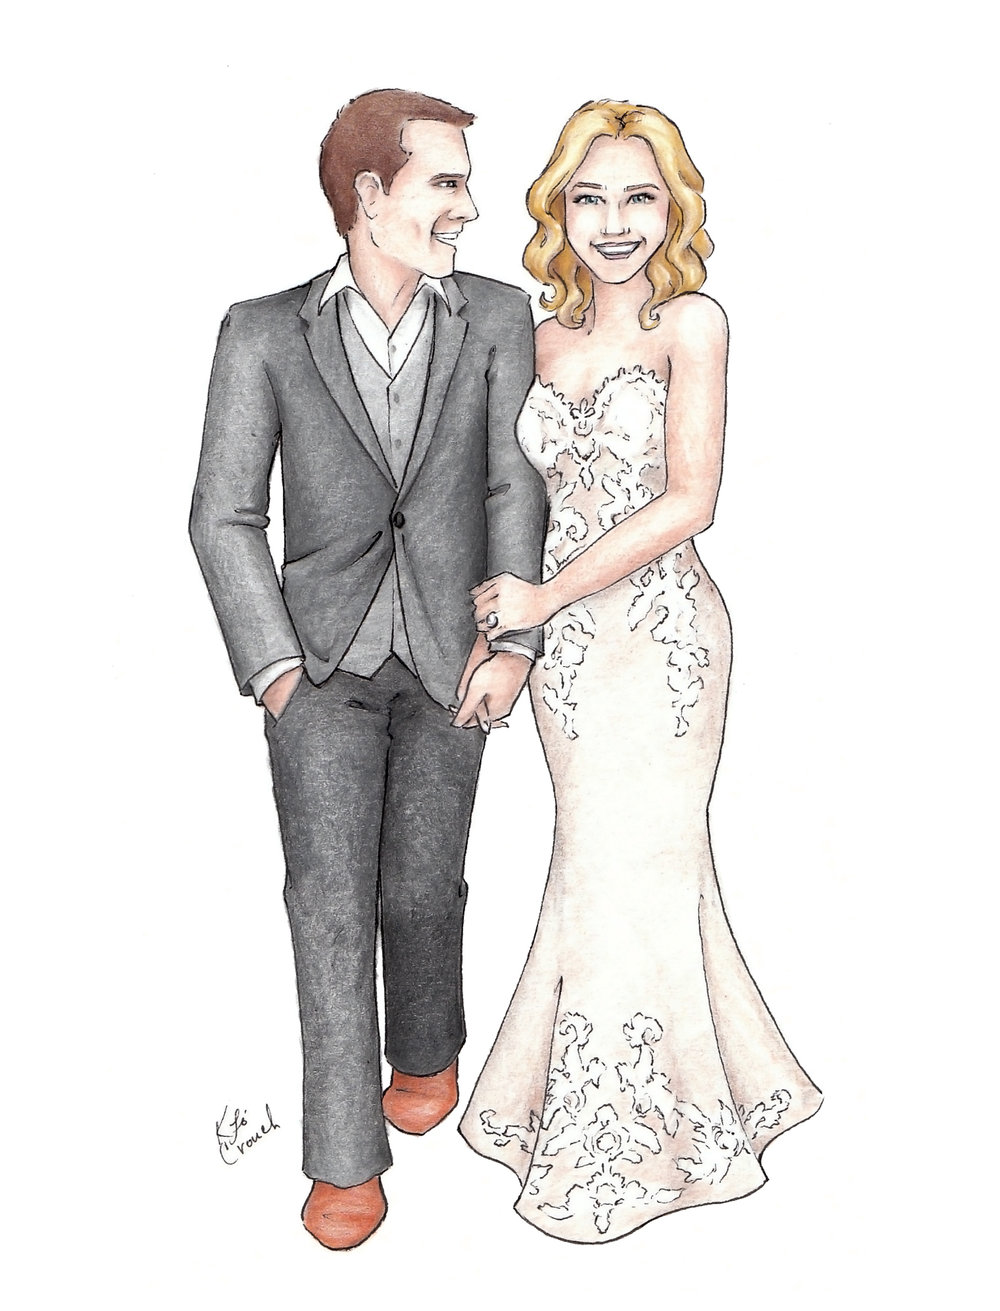 Custom watercolor bridal portrait. Fine art bride and groom portrait for a unique anniversary gift. #customportrait #portraitillustration #blusheddesign #watercolorportrait